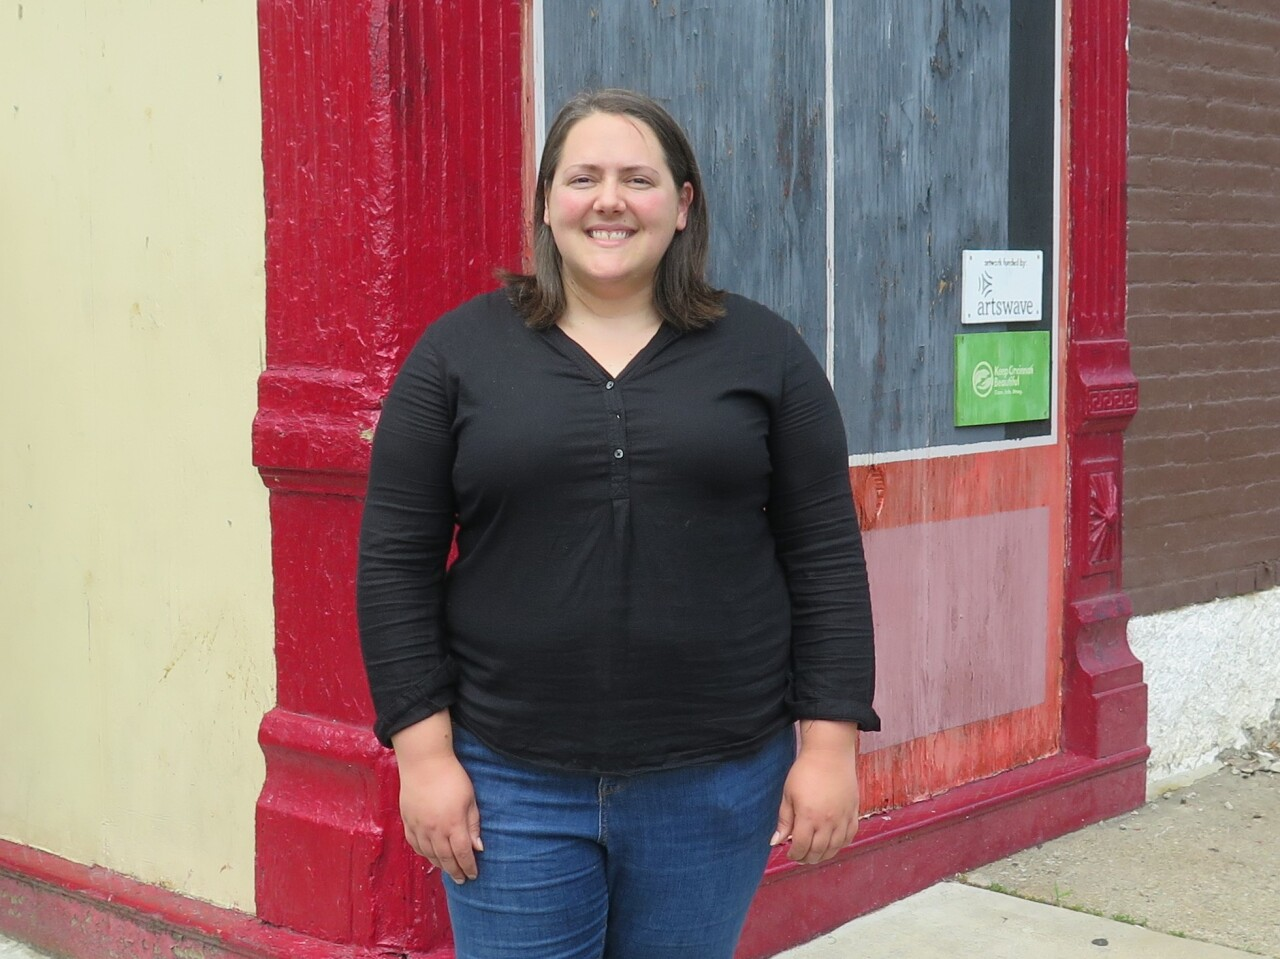 Mary Delaney poses for a photo outside one of the buildings that will be renovated as part of LPH Thrives. This photo was taken in June 2020. Delaney is wearing a black long-sleeved top and jeans and has shoulder-length brown hair.